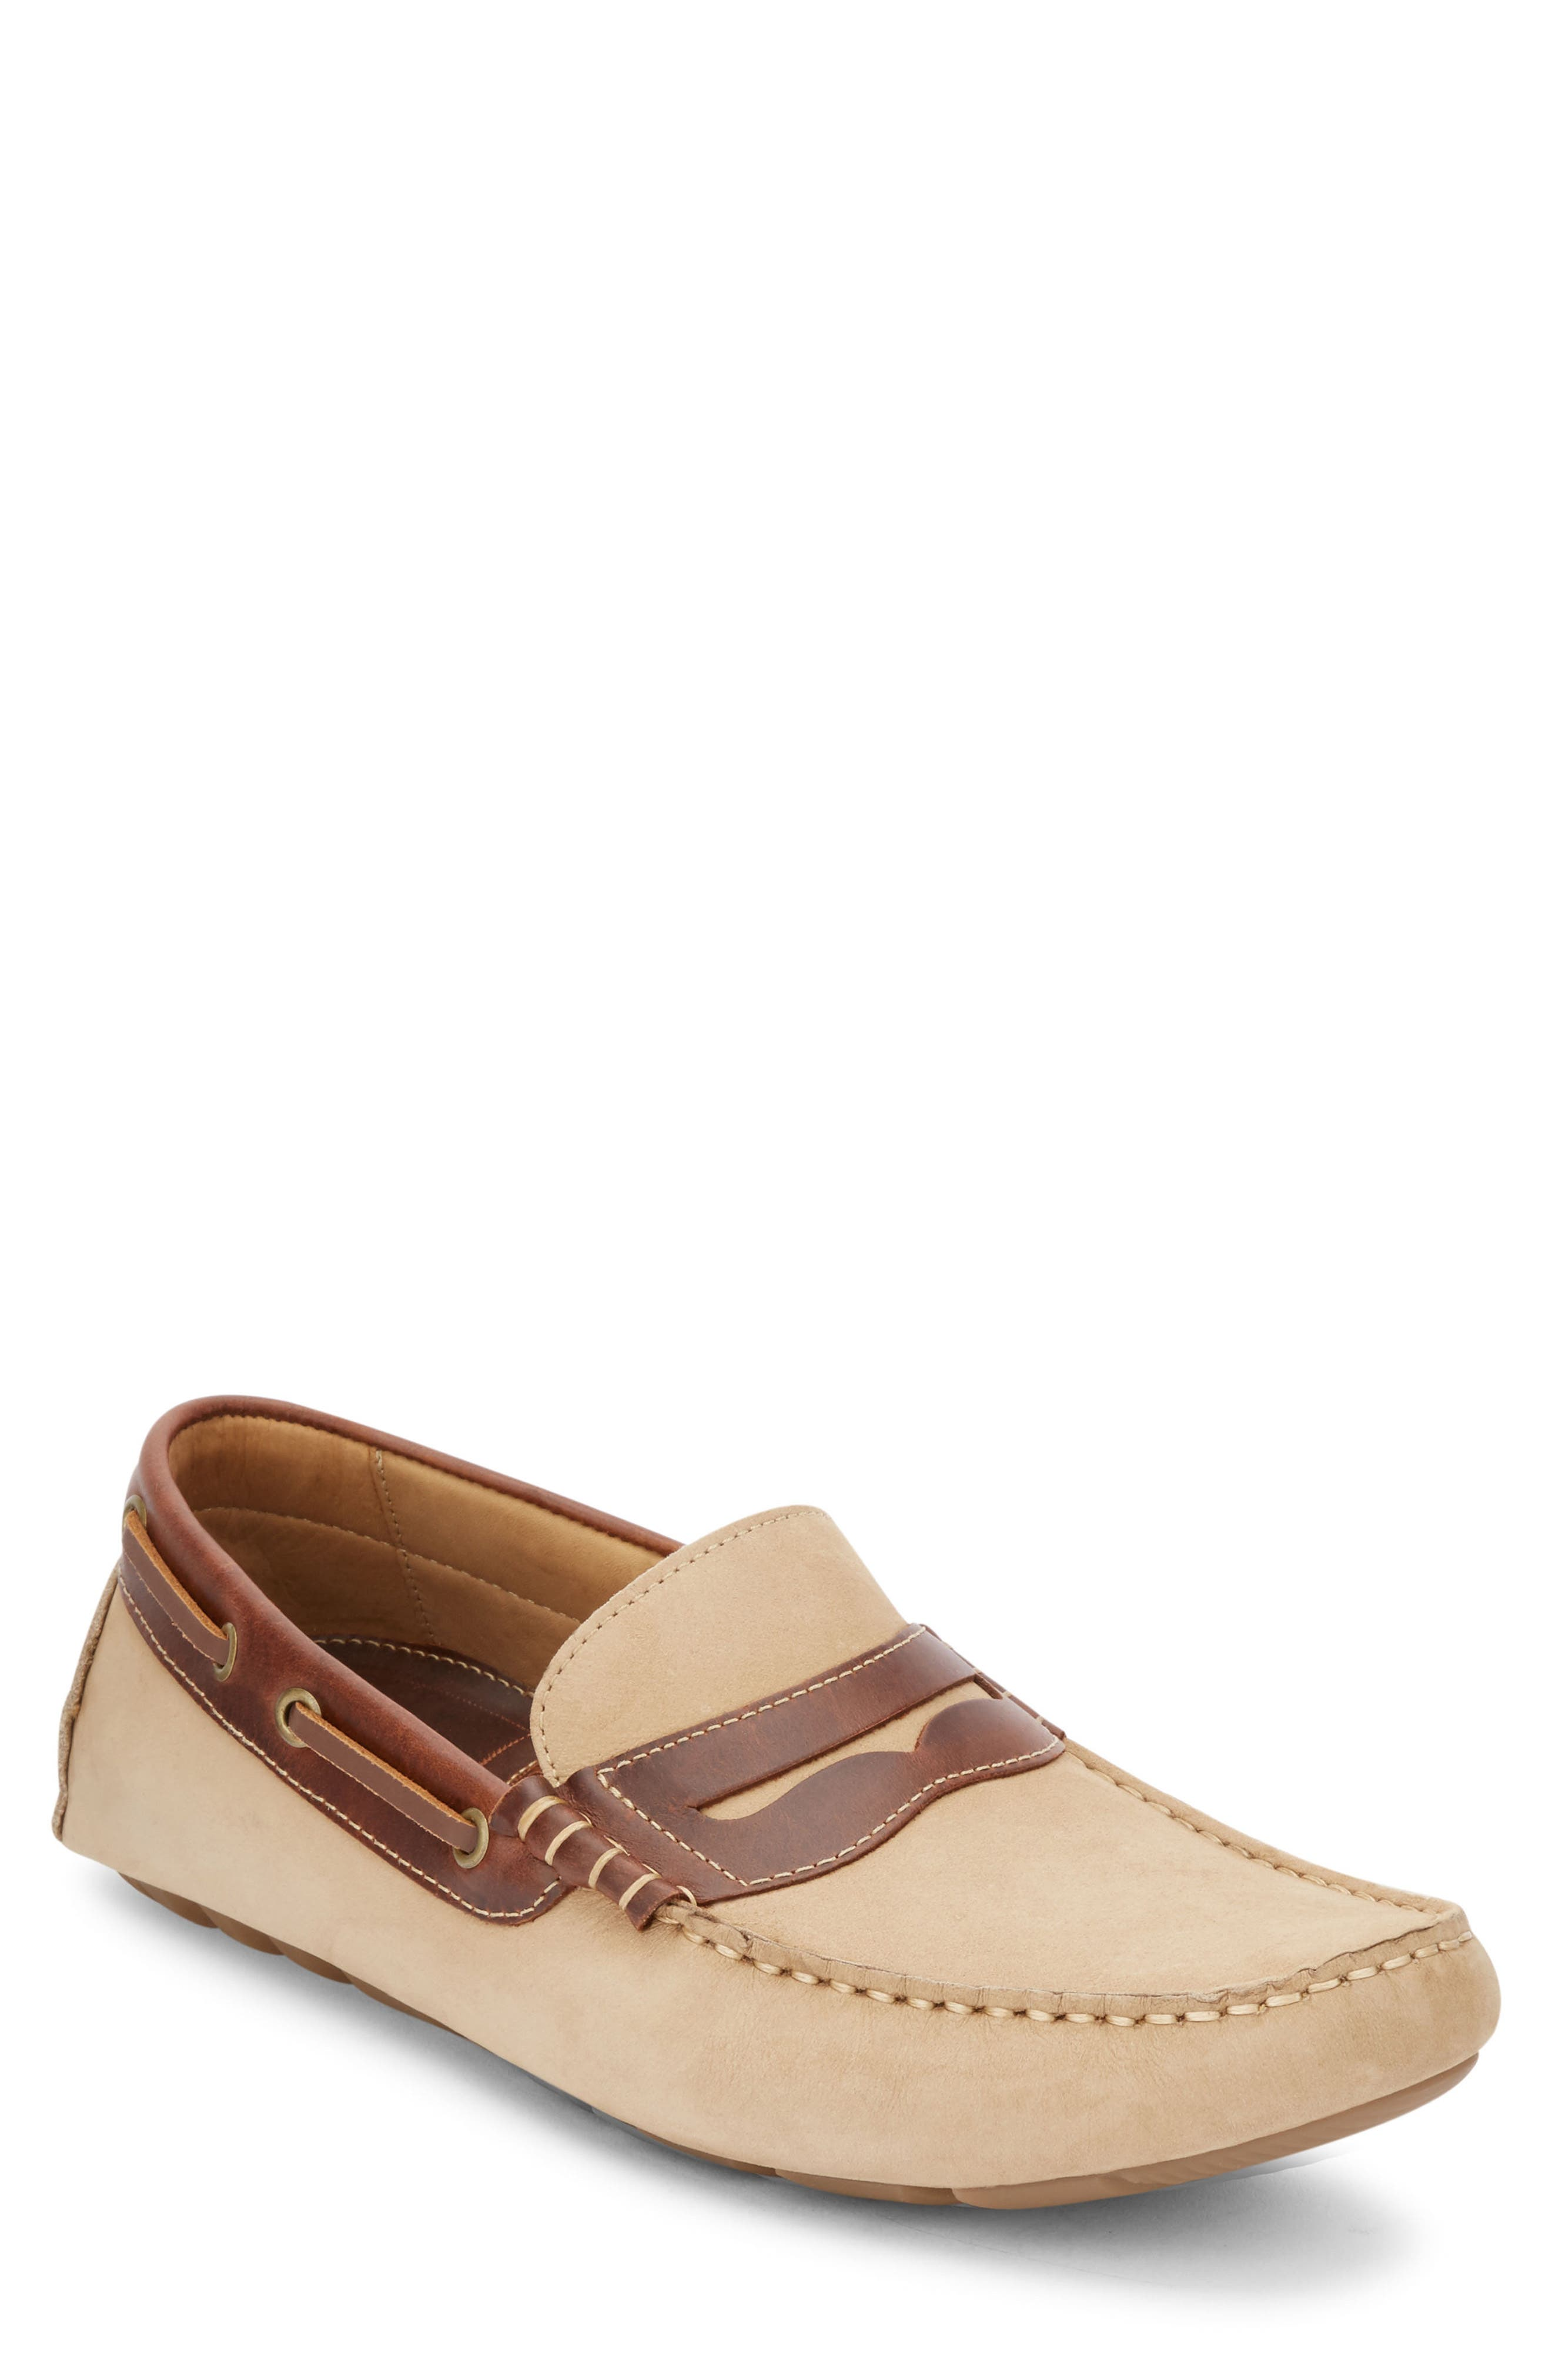 Warrick Driving Shoe,                         Main,                         color, Bone/ Seahorse Leather